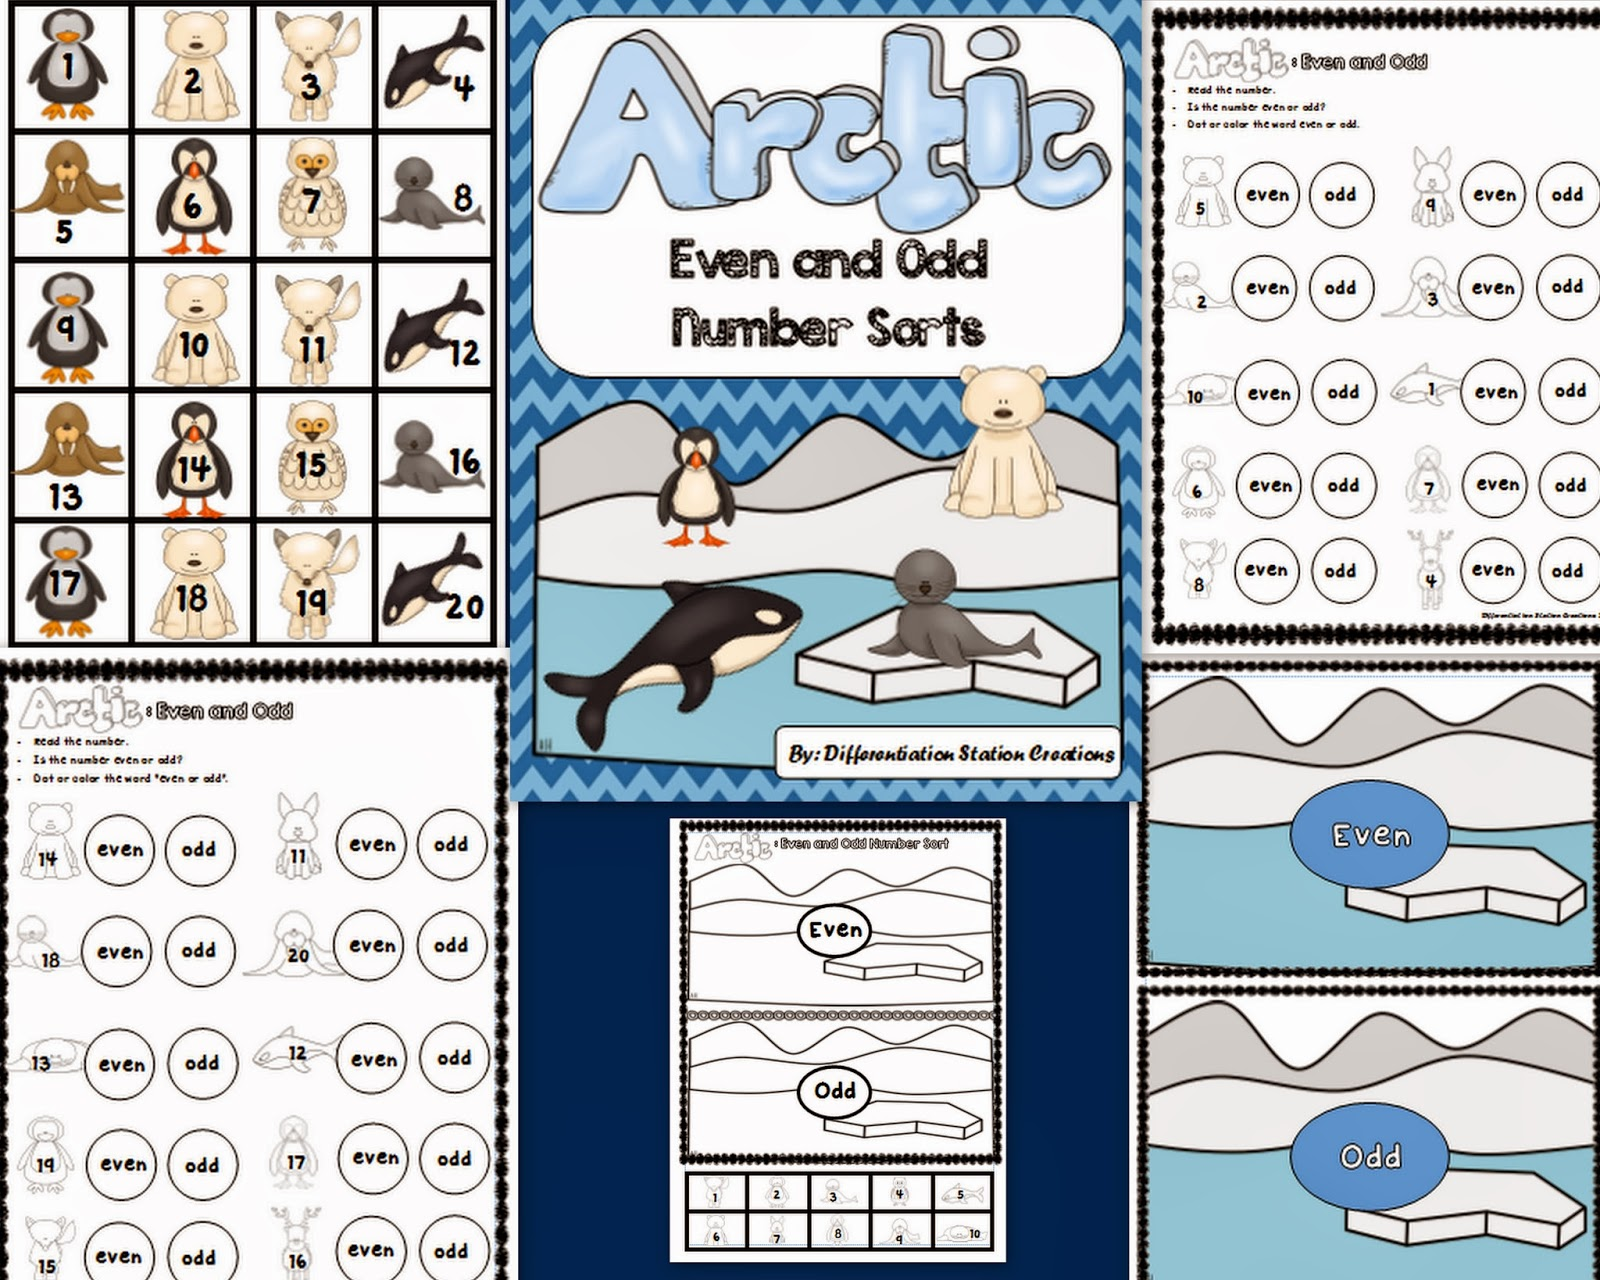 http://www.teacherspayteachers.com/Product/FREE-Arctic-Even-and-Odd-Number-Sort-Center-Printables-1096488